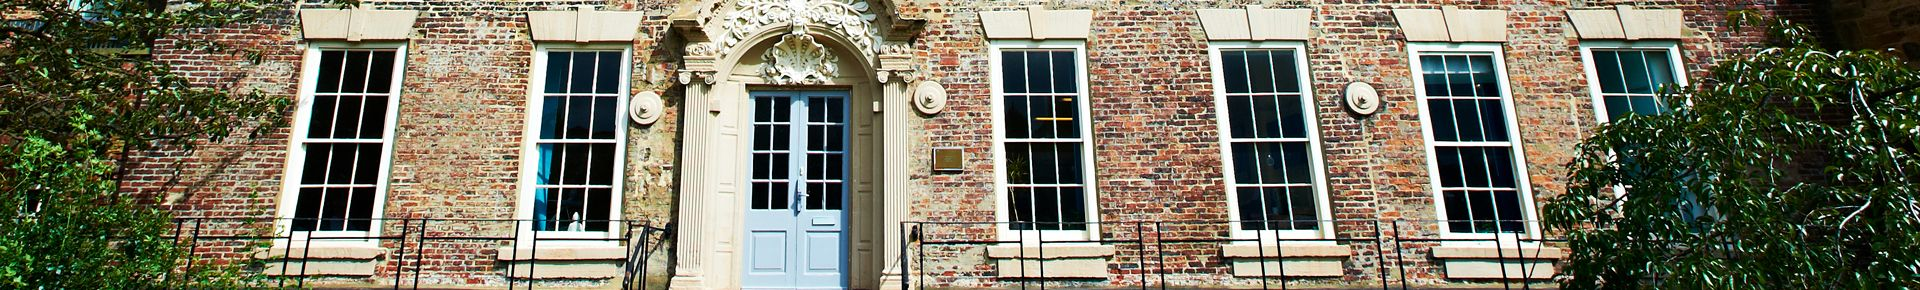 External shot of Institute of Advanced study at Cosin's Hall